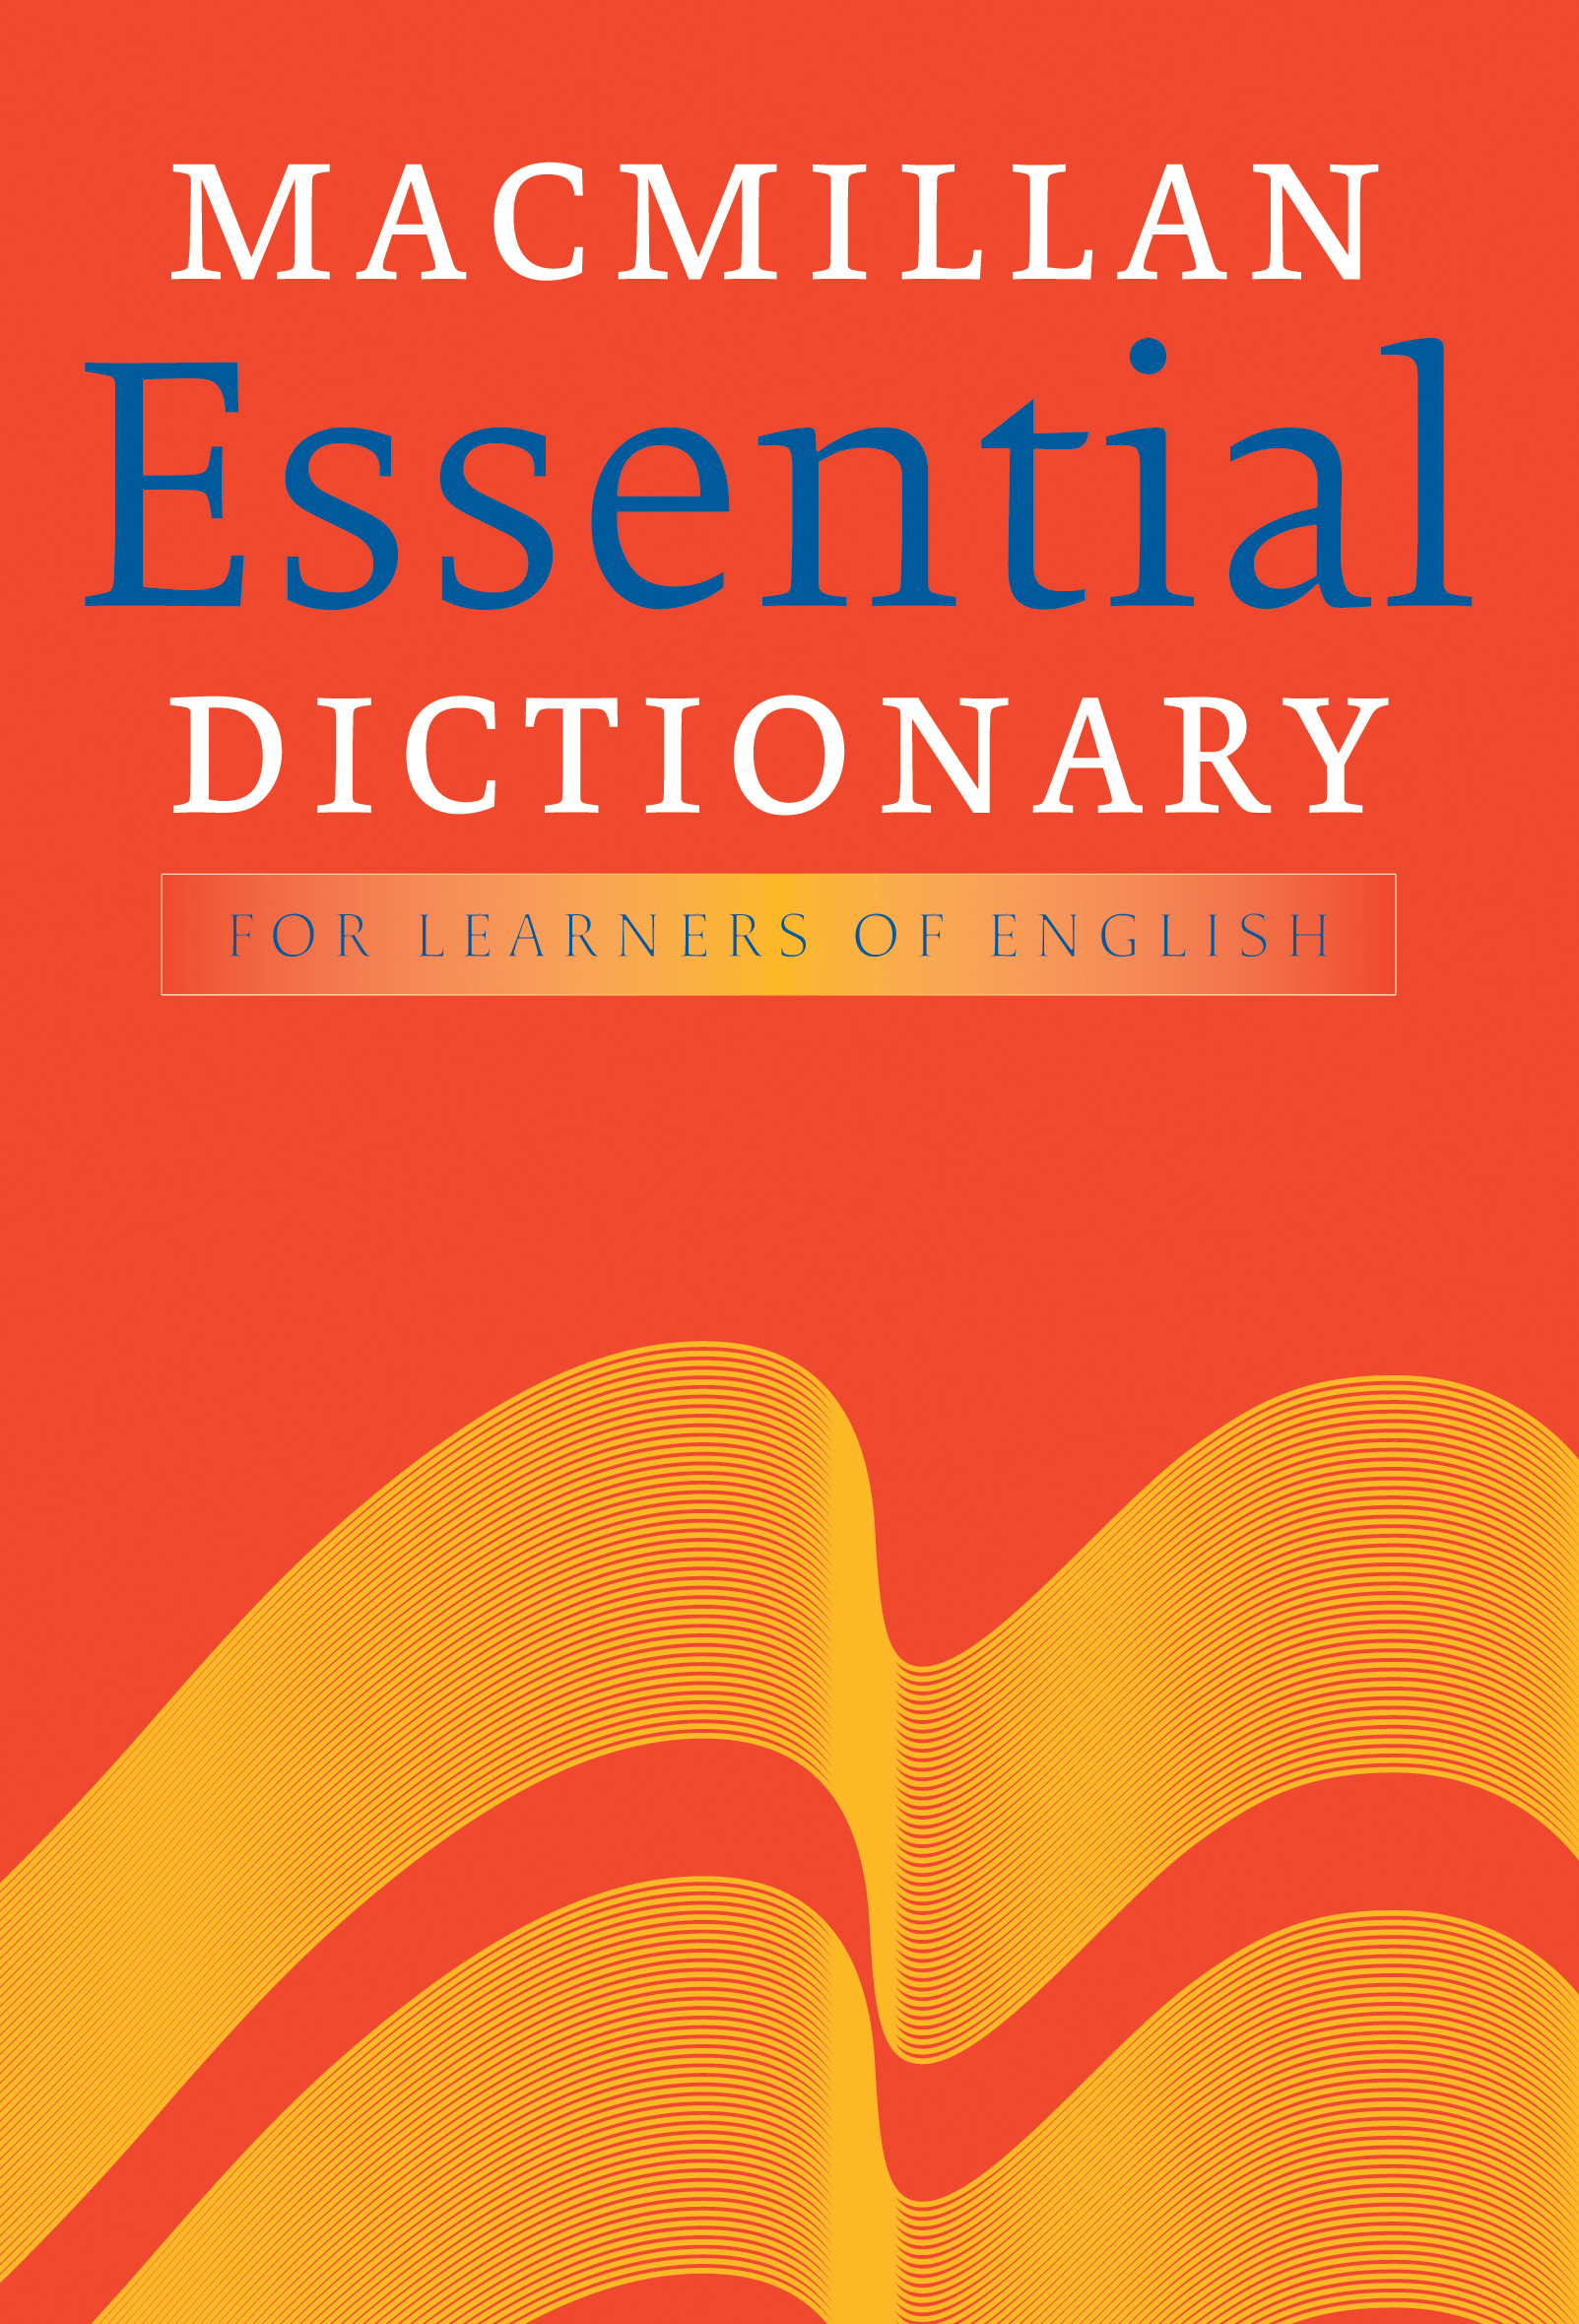 Macmillan Essential Dictionary & CD-ROM Pack